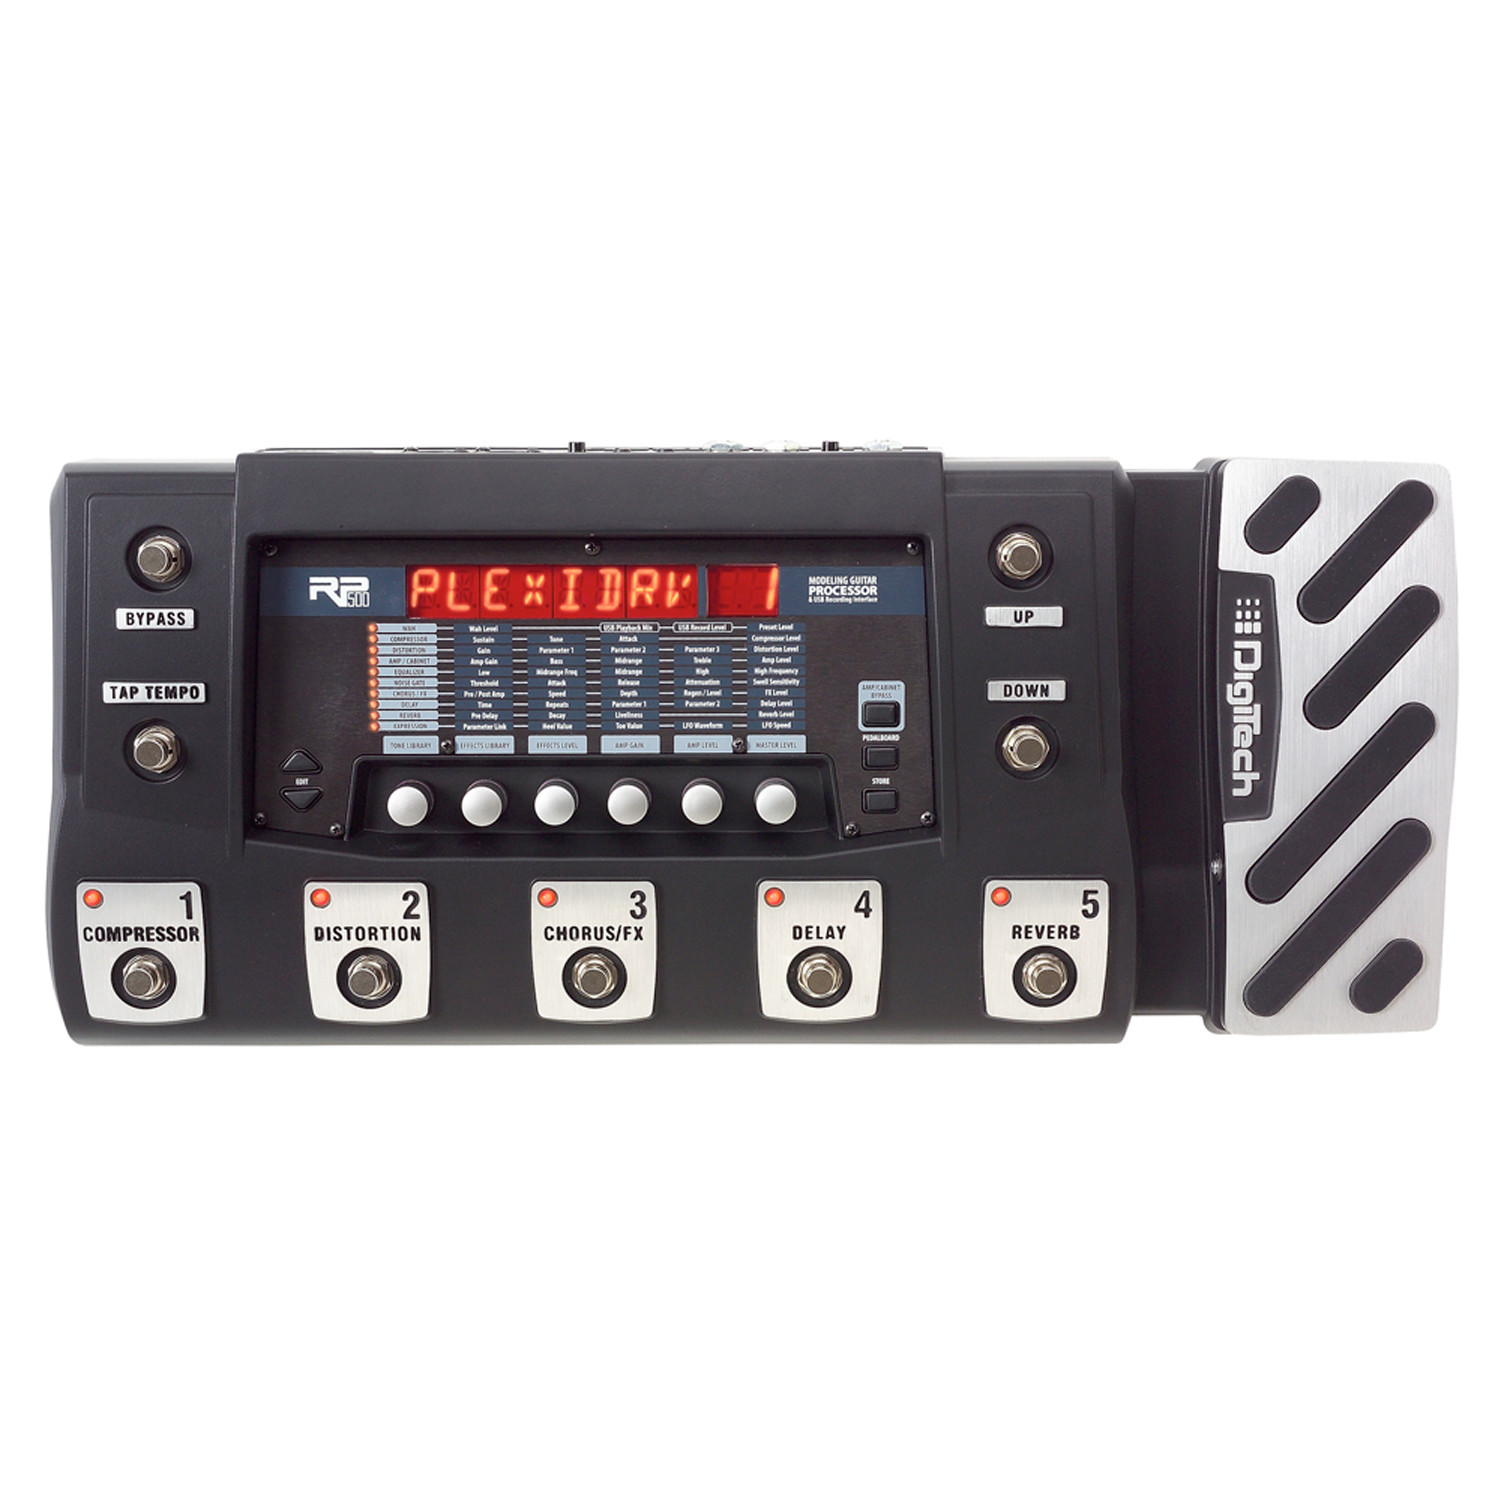 Multi-Effects Switching System & USB Recording Interface